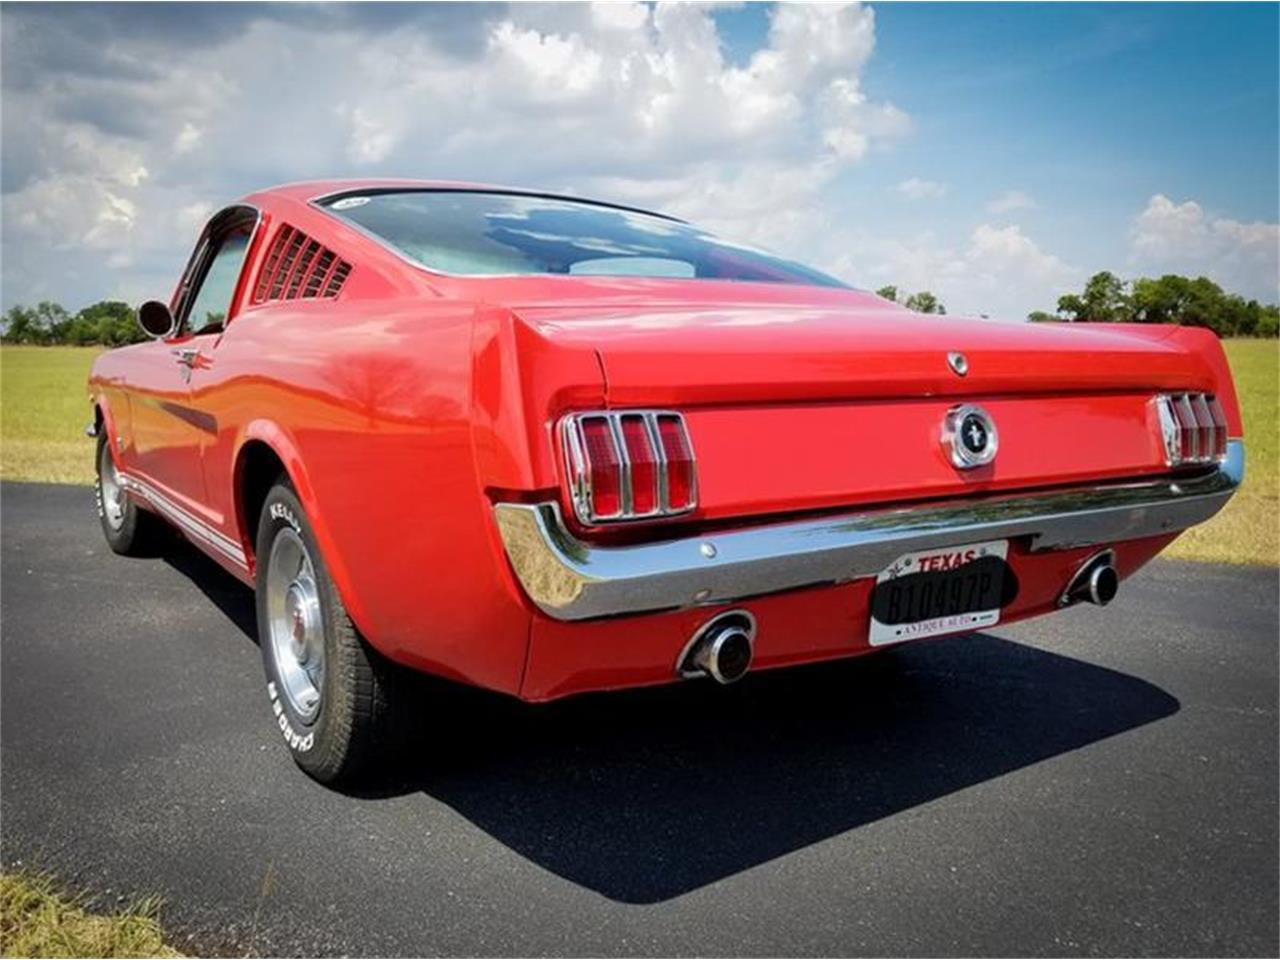 Large Picture of 1965 Ford Mustang located in Fredericksburg Texas - $38,500.00 - NRRS